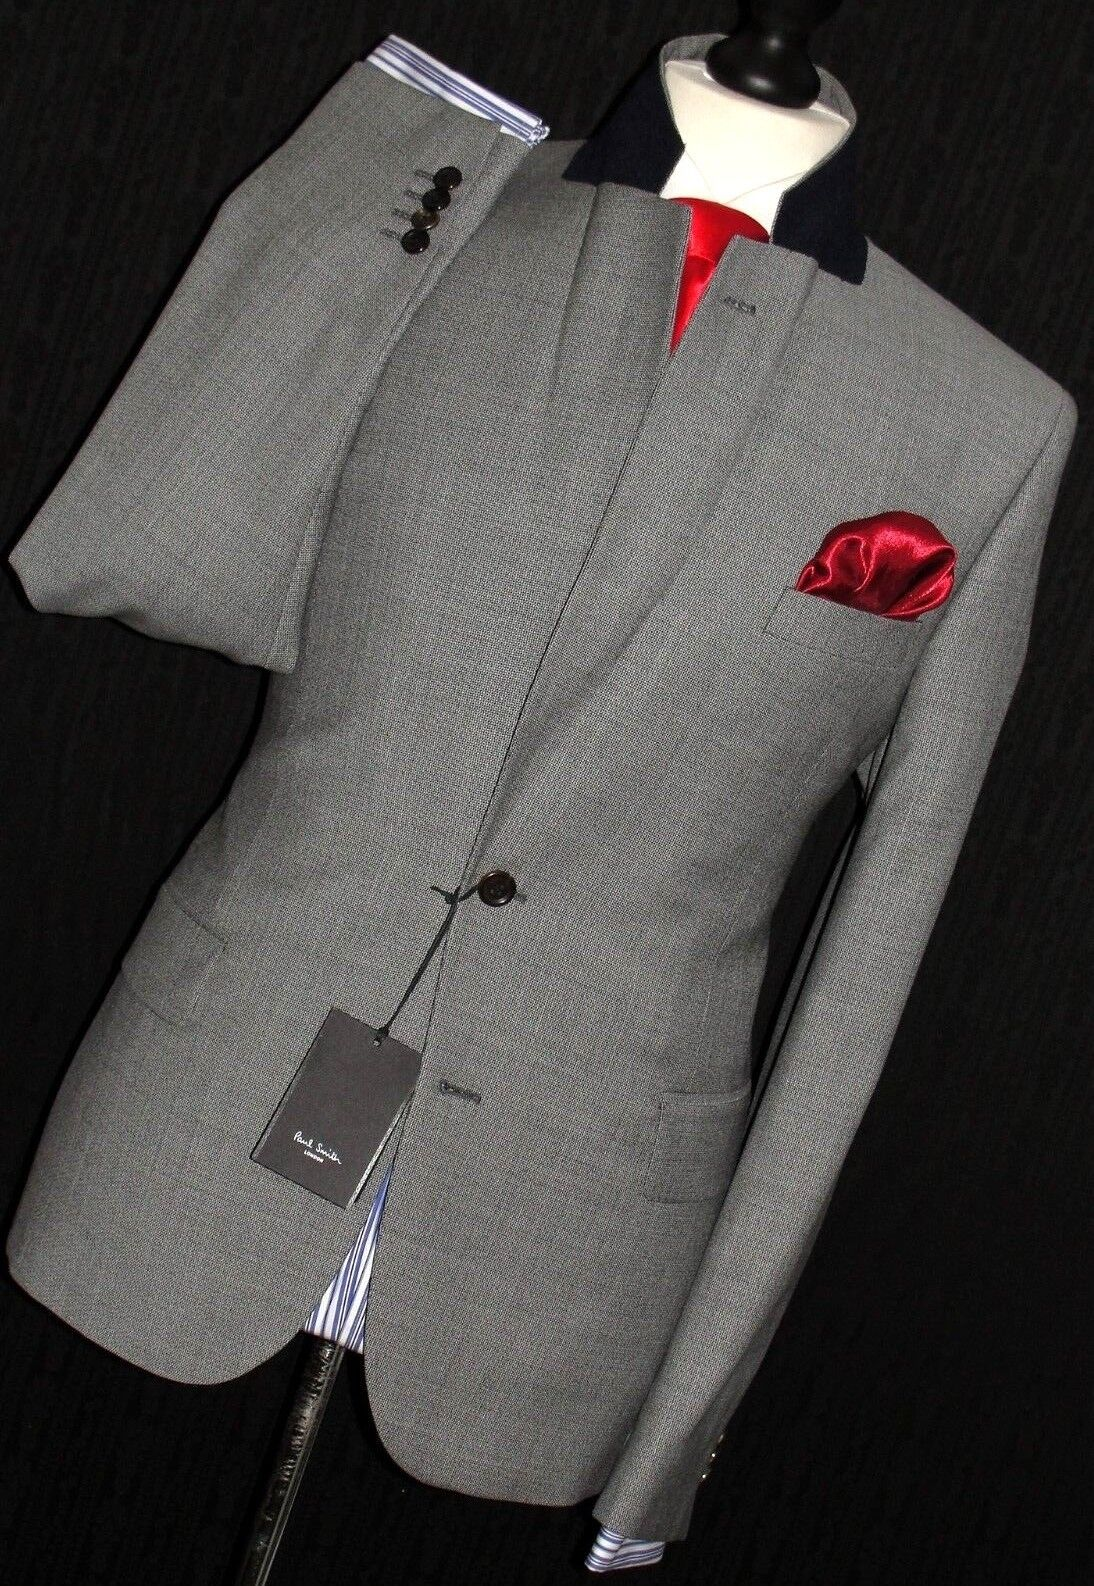 BNWT  Herren PAUL SMITH LONDON TAILOR-MADE 2018 EDITION TEXTUROT grau SUIT 44R W38